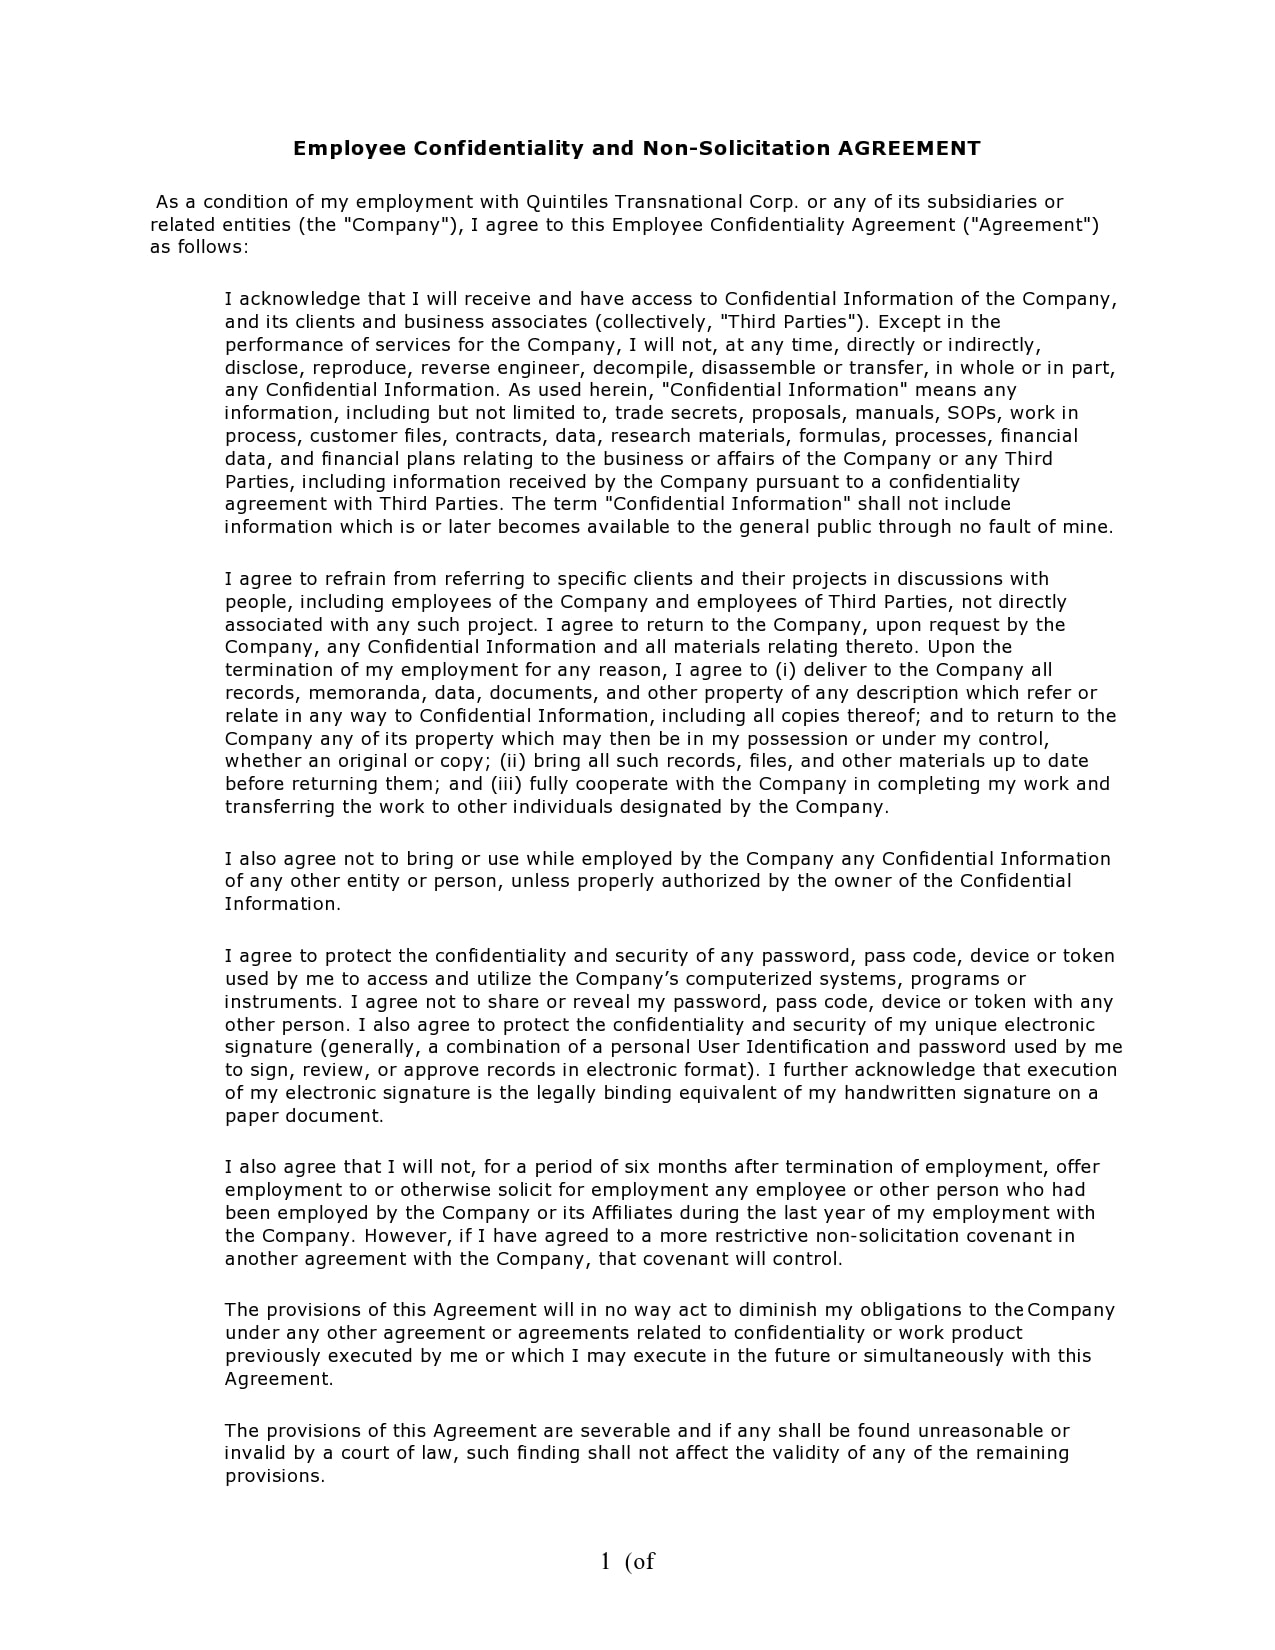 confidentiality agreement template 13